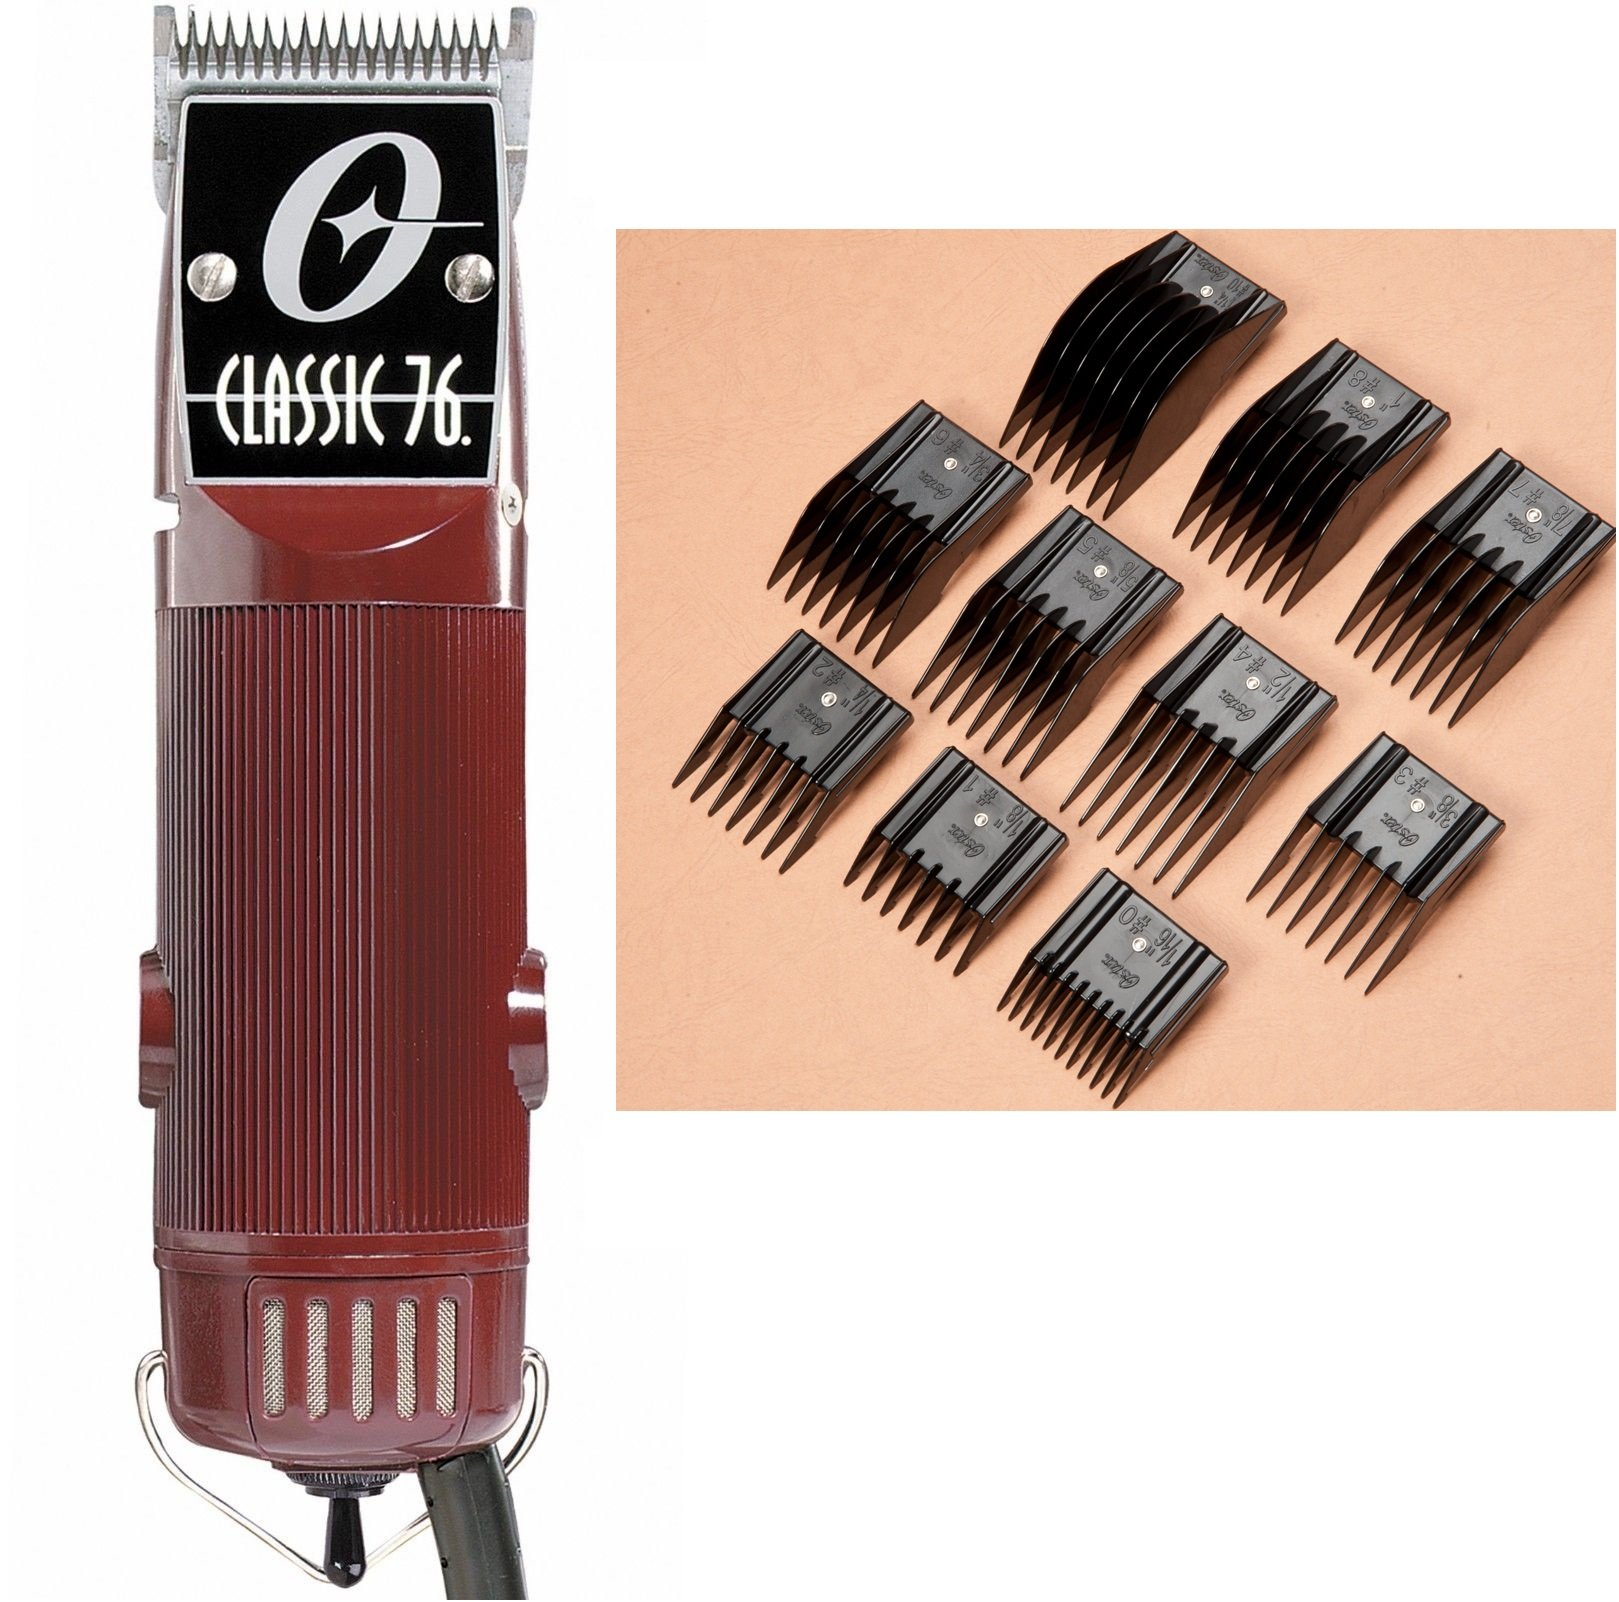 Oster Classic 12 Hair Clipper with 12 Blade and 12-Piece comb Guide set  (Renewed)